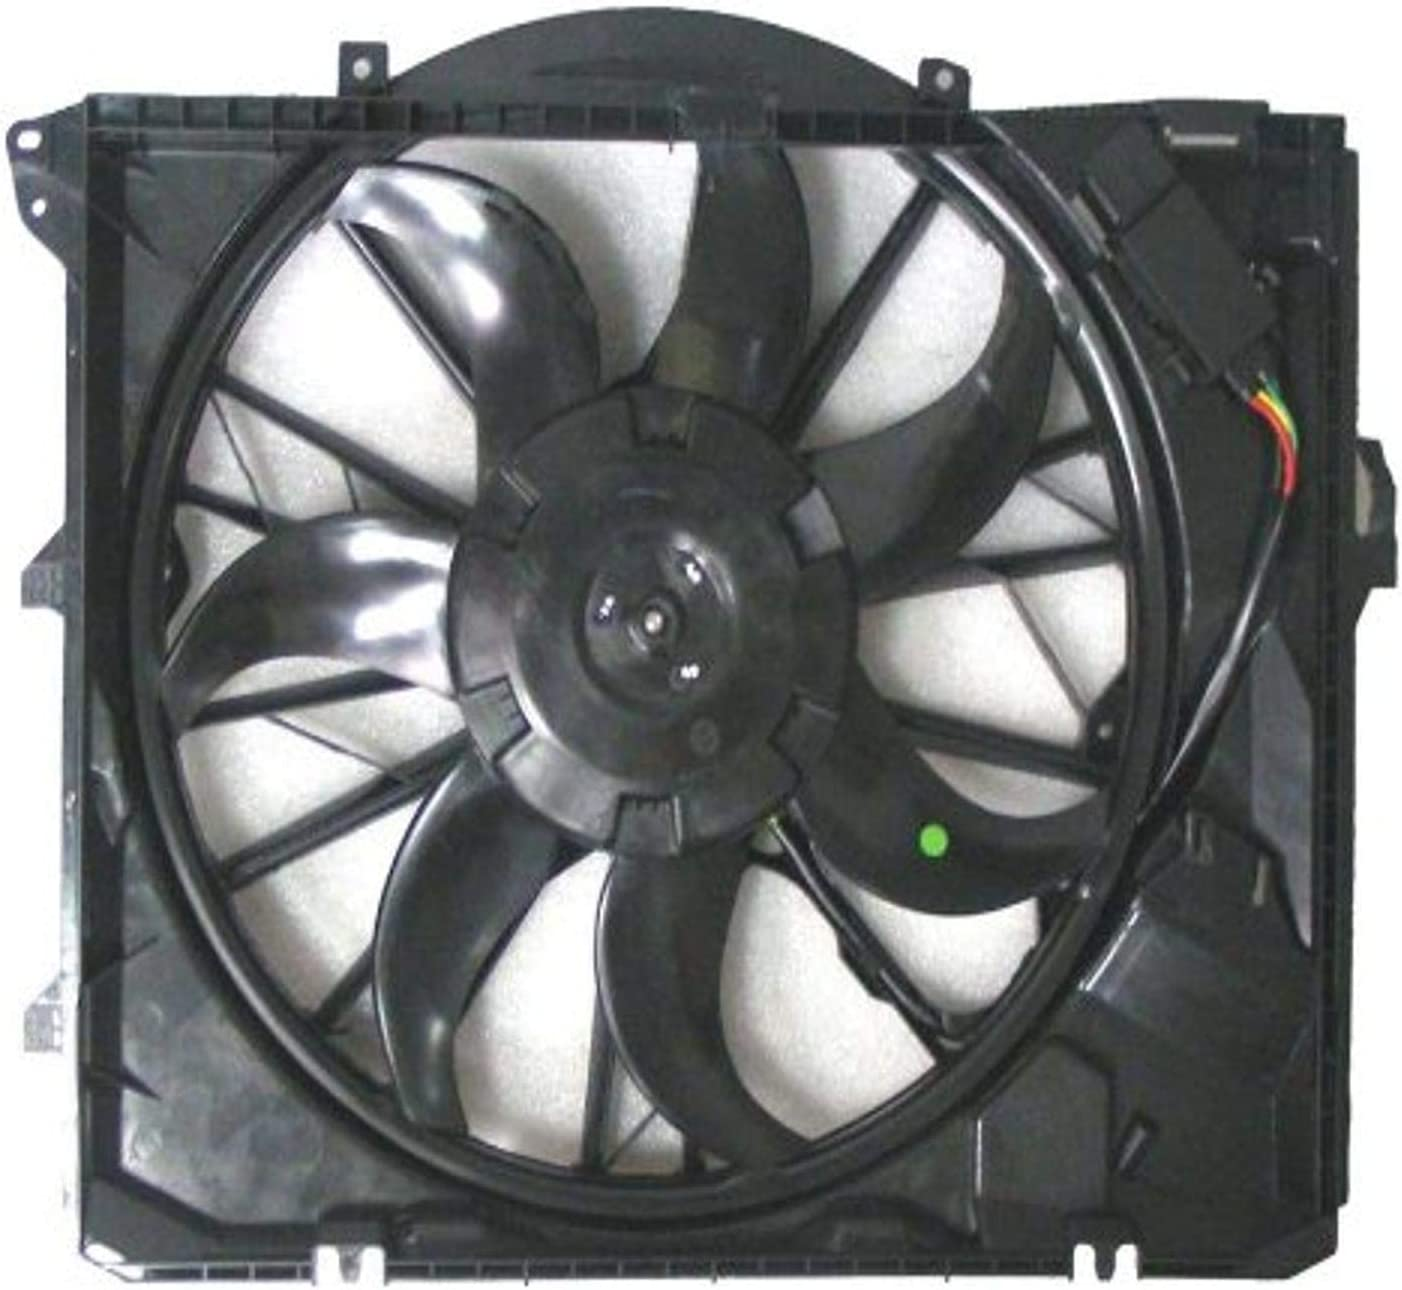 DEPO 344-55016-100 Replacement Engine Cooling Fan Assembly (This product is an aftermarket product. It is not created or sold by the OE car company)